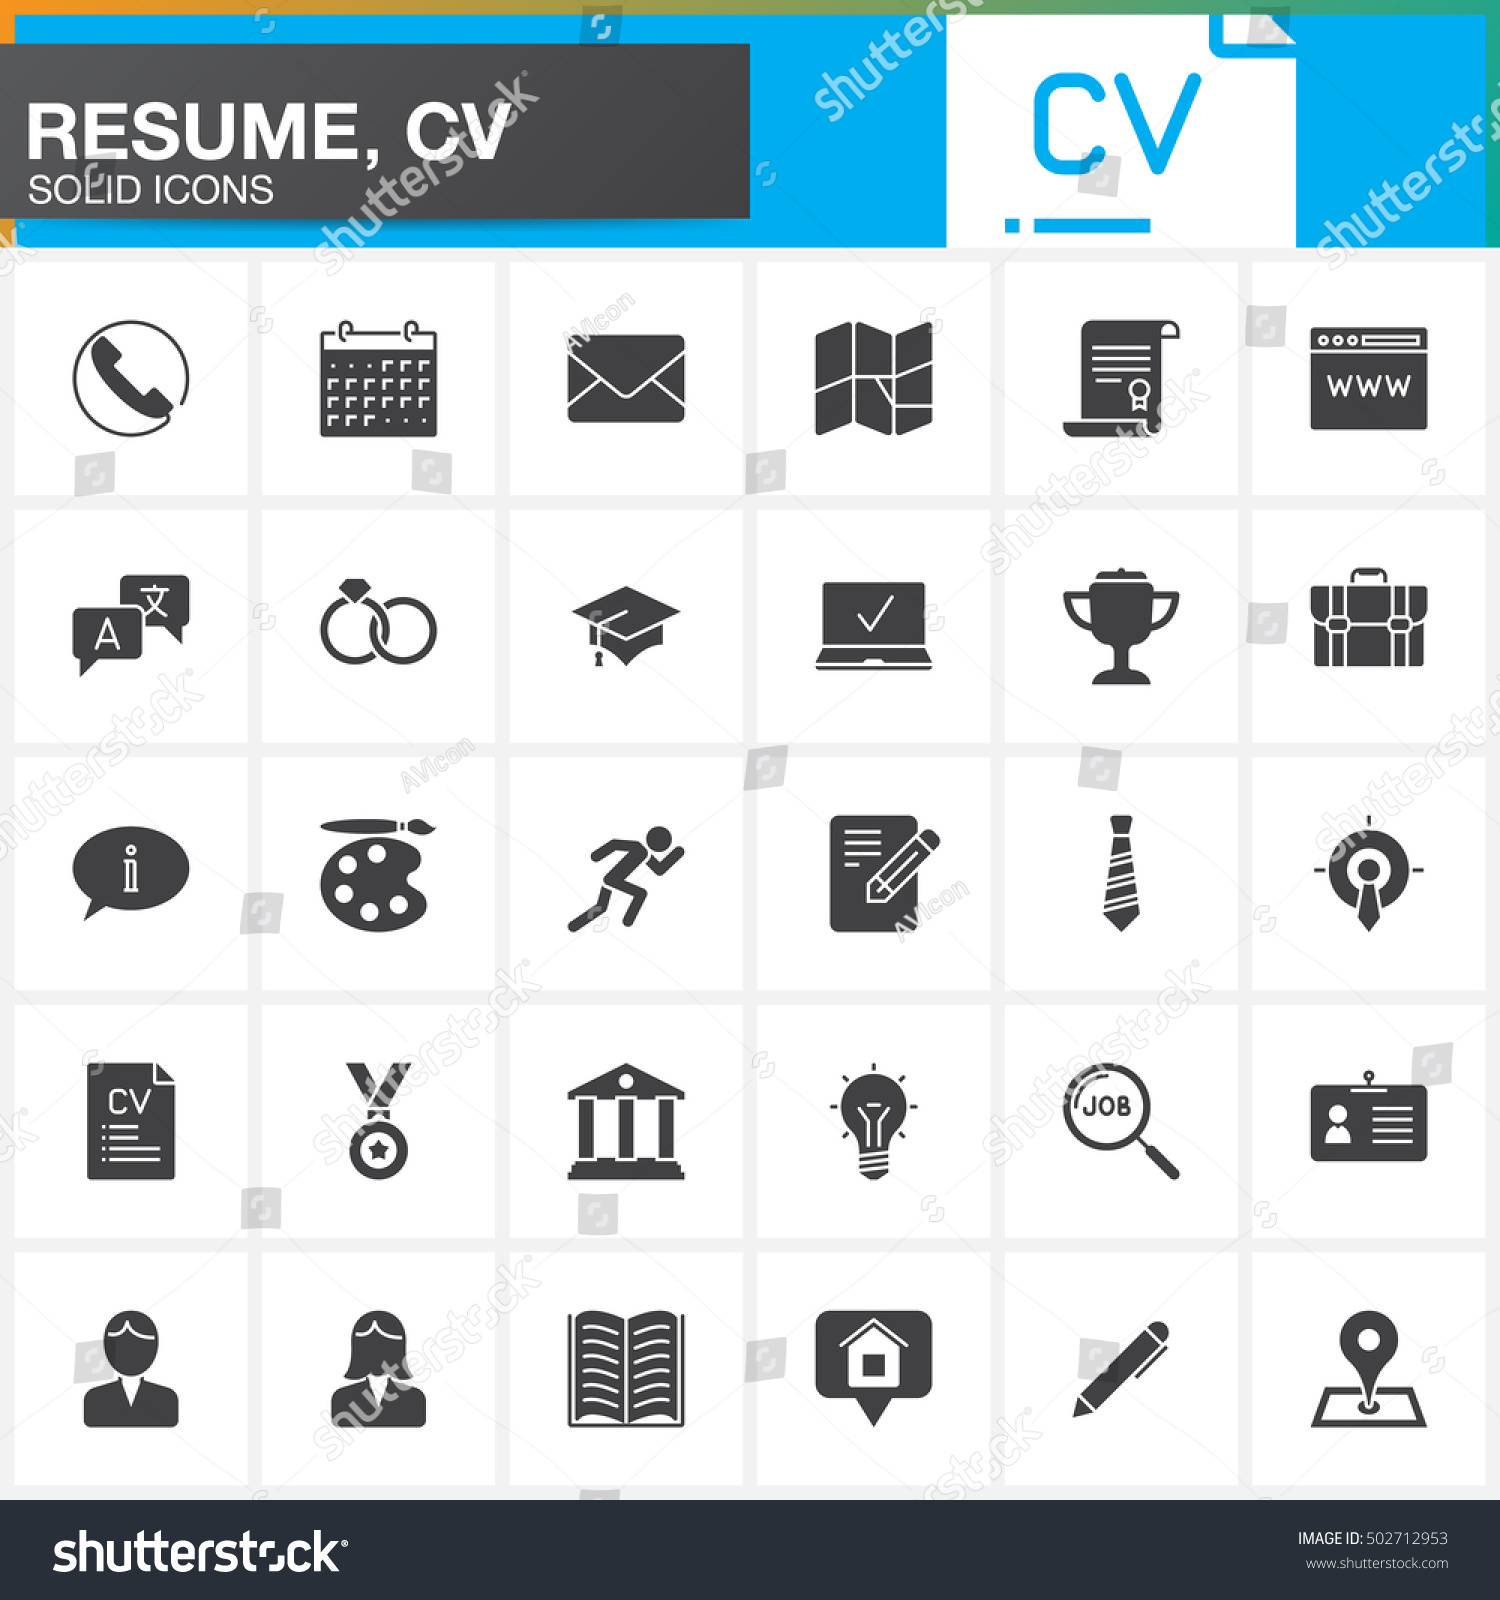 vector icons set resume cv modern image vectorielle